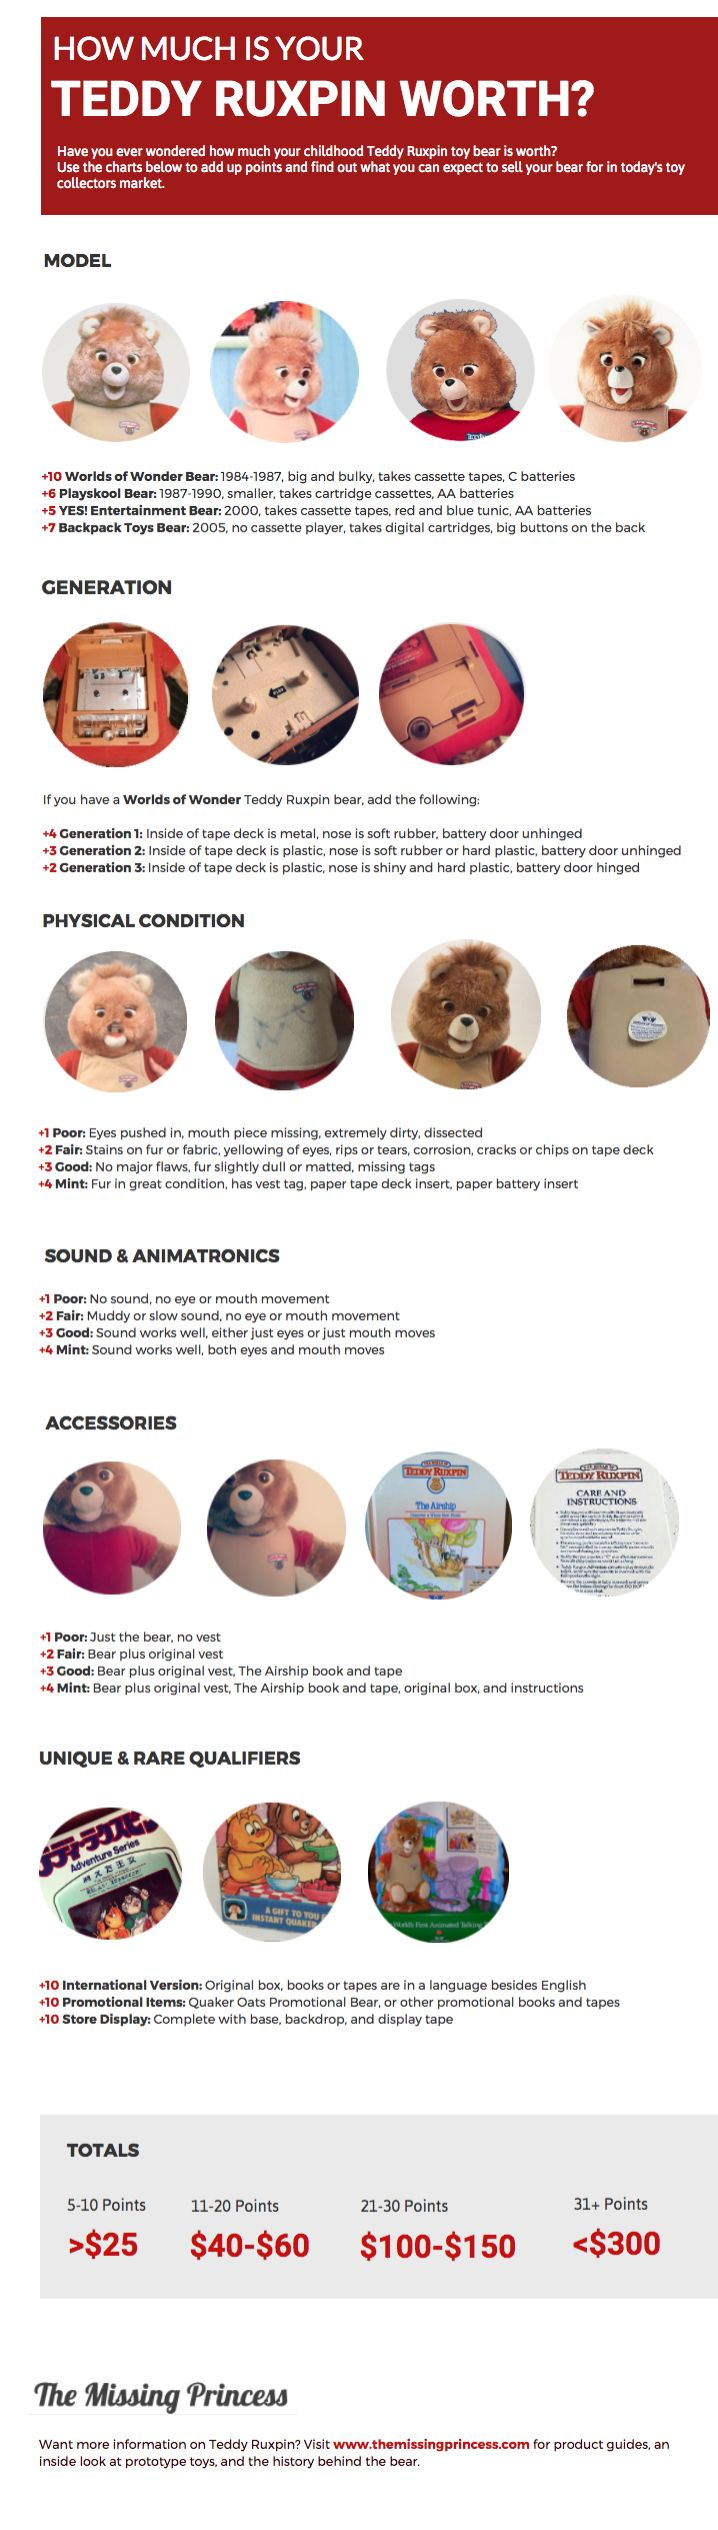 Have you ever wondered how much your Teddy Ruxpin is worth? Use this infographic to find out!